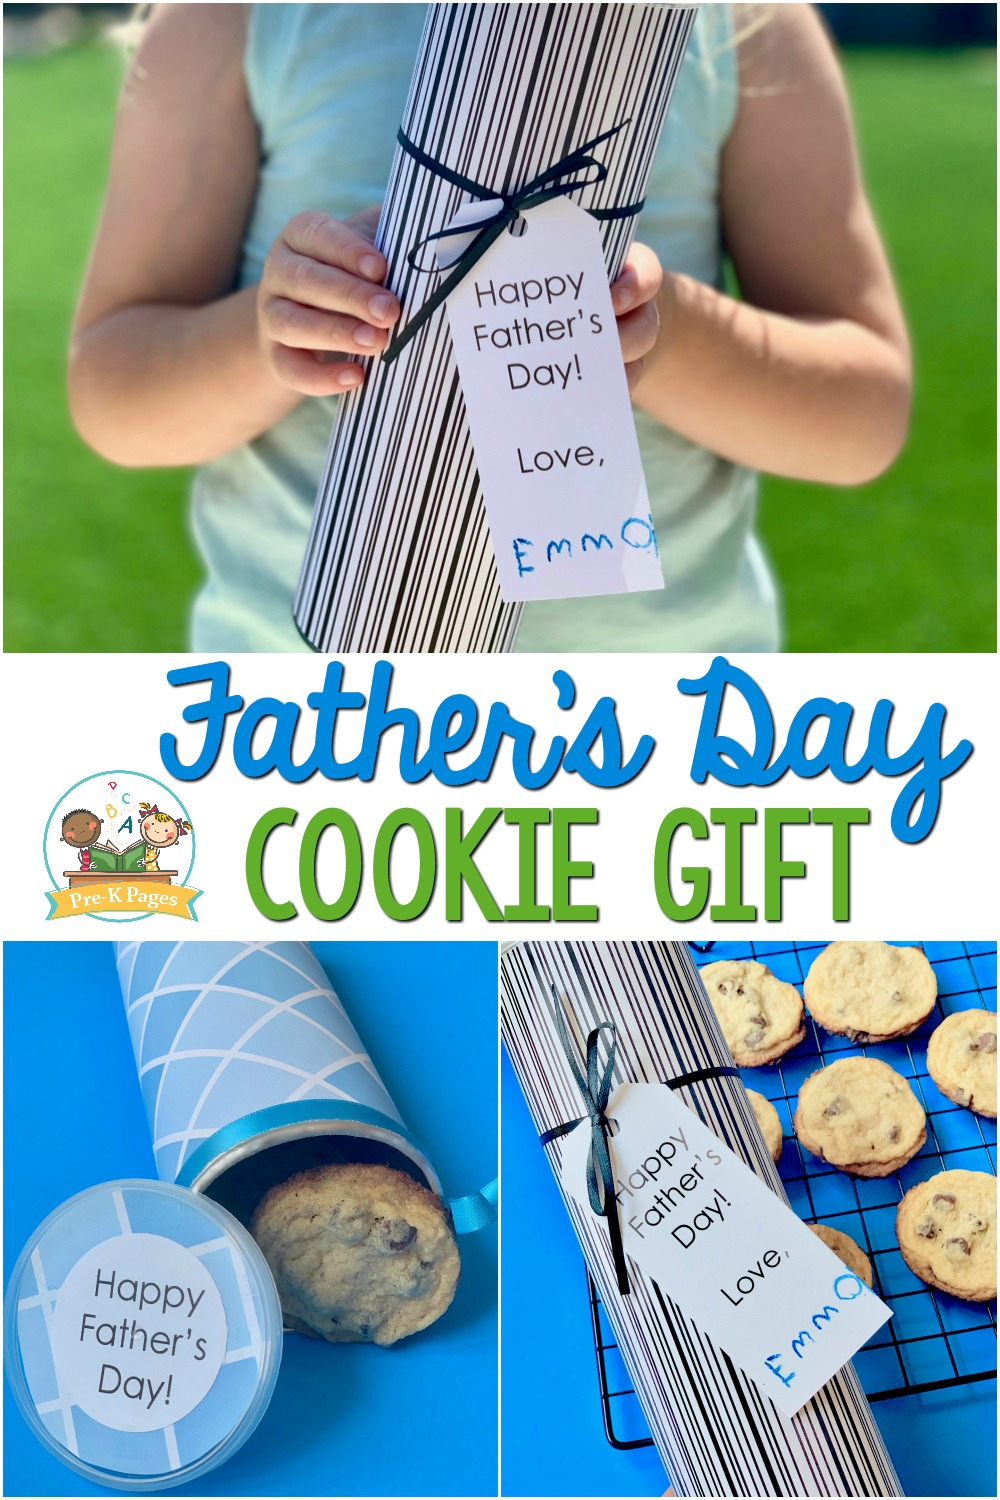 Cookie Gift for Fathers Day from Kids